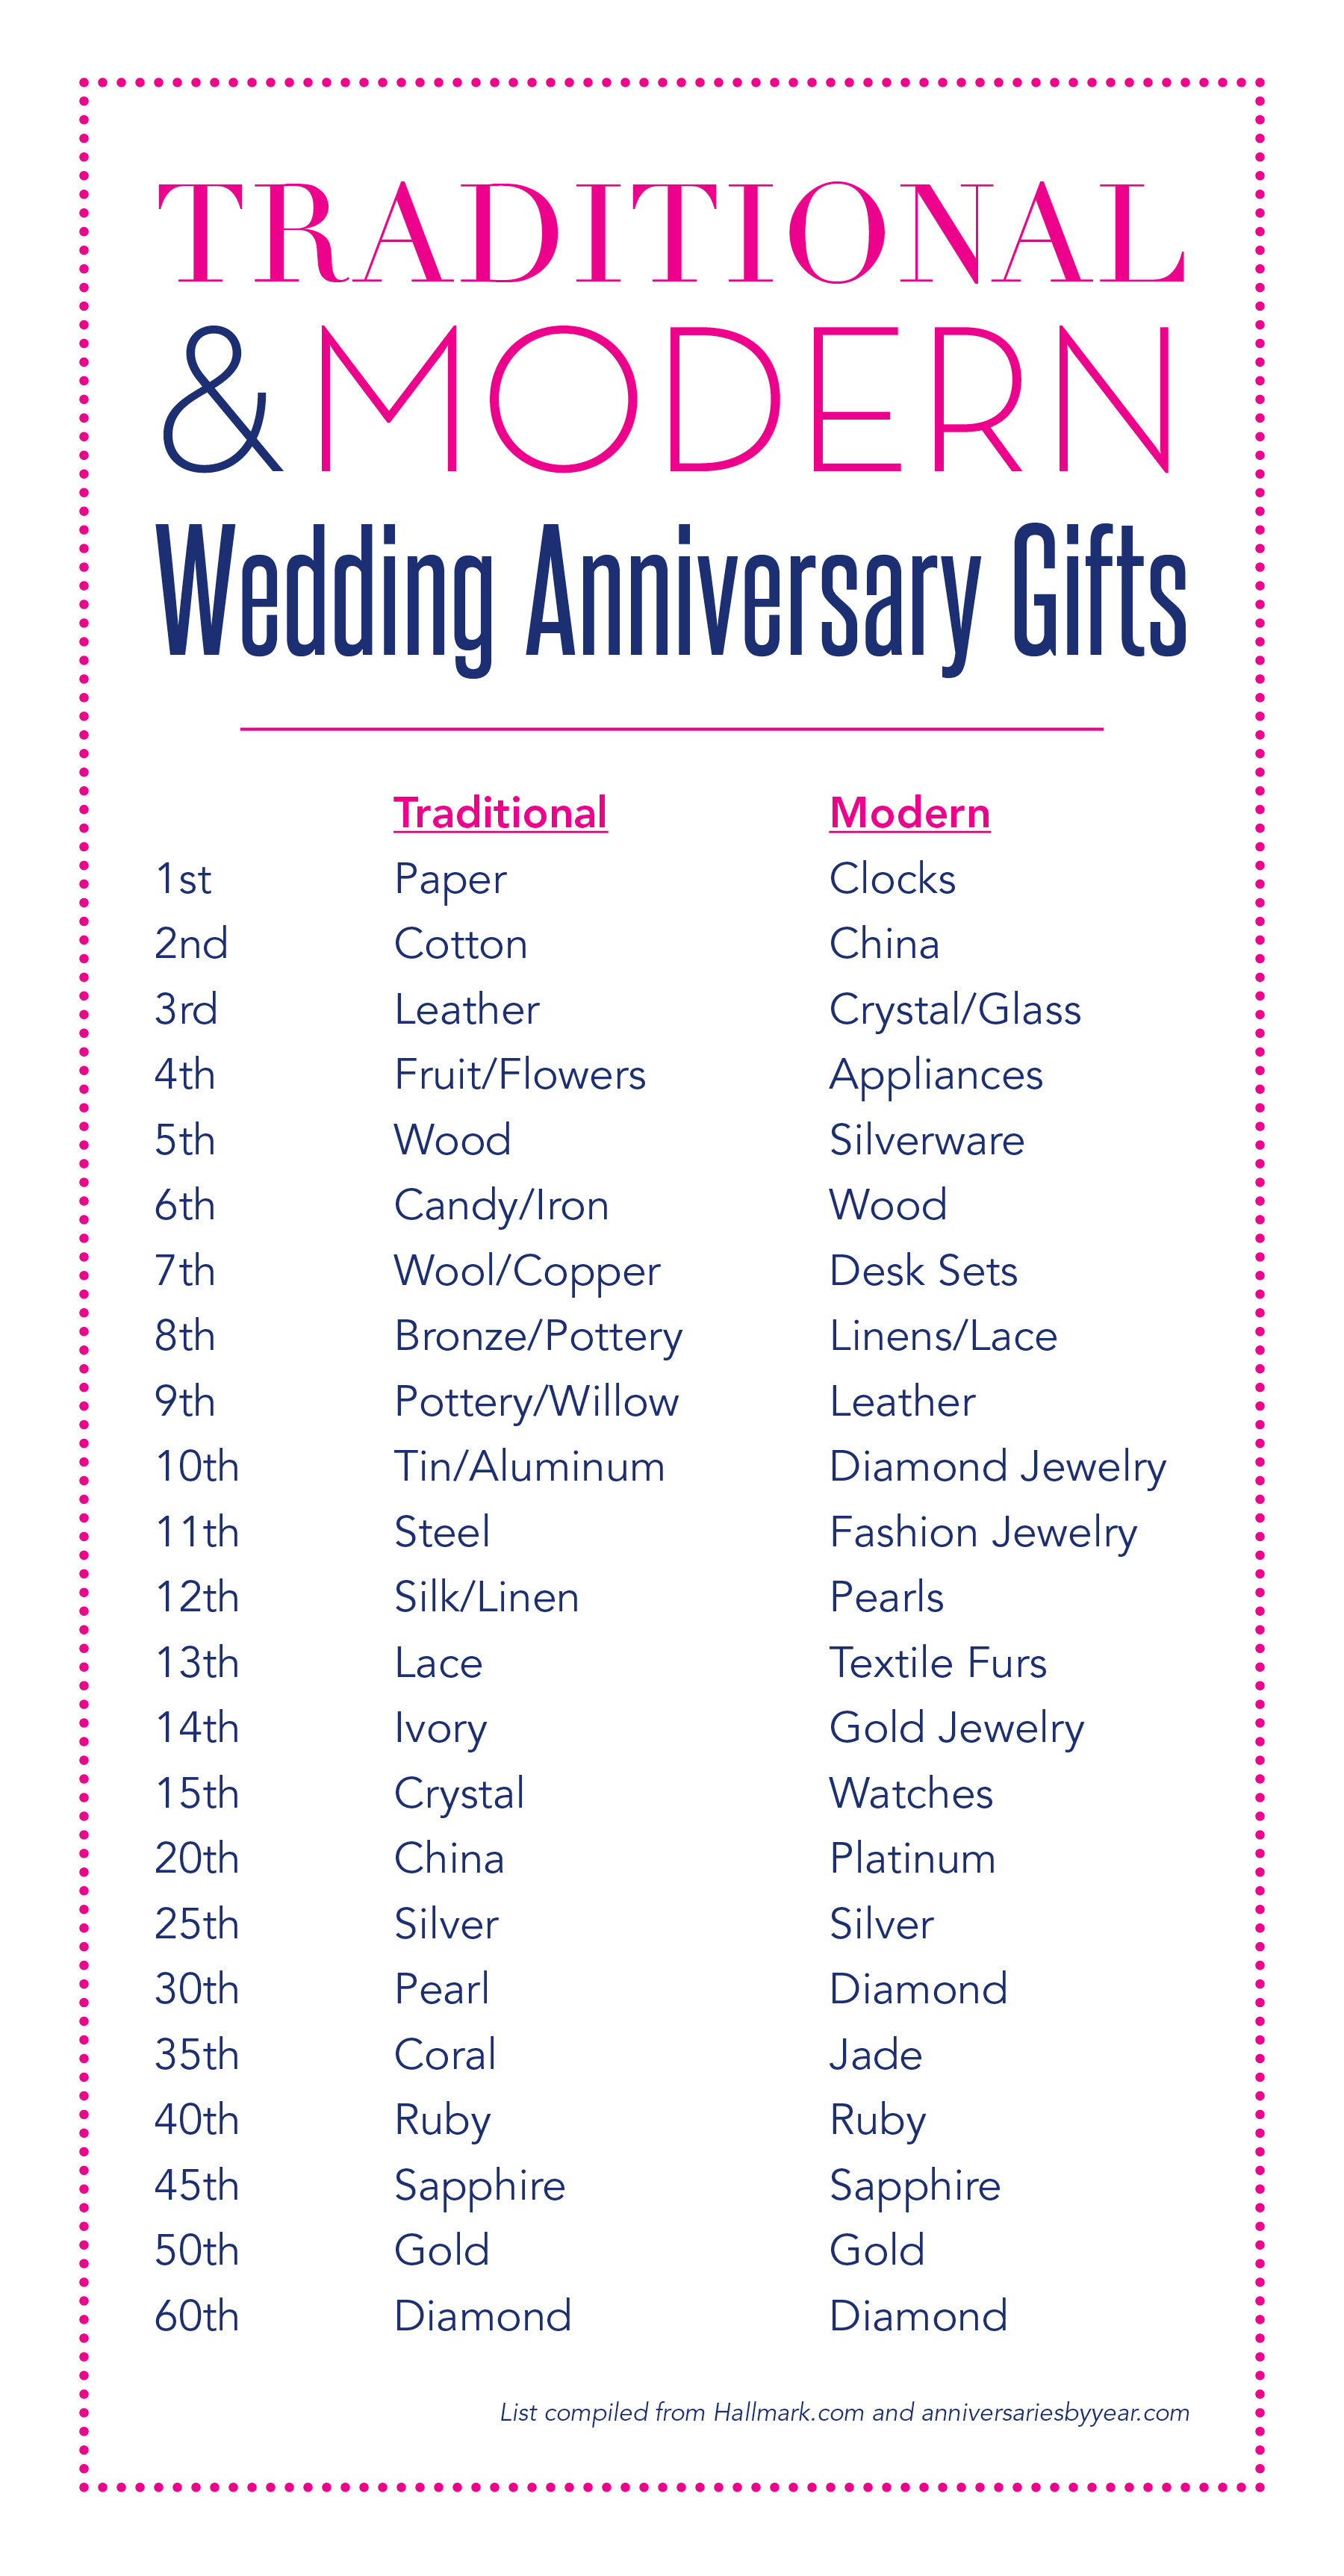 List Of Wedding Gifts By Year : wedding anniversary gifts (traditional & modern)